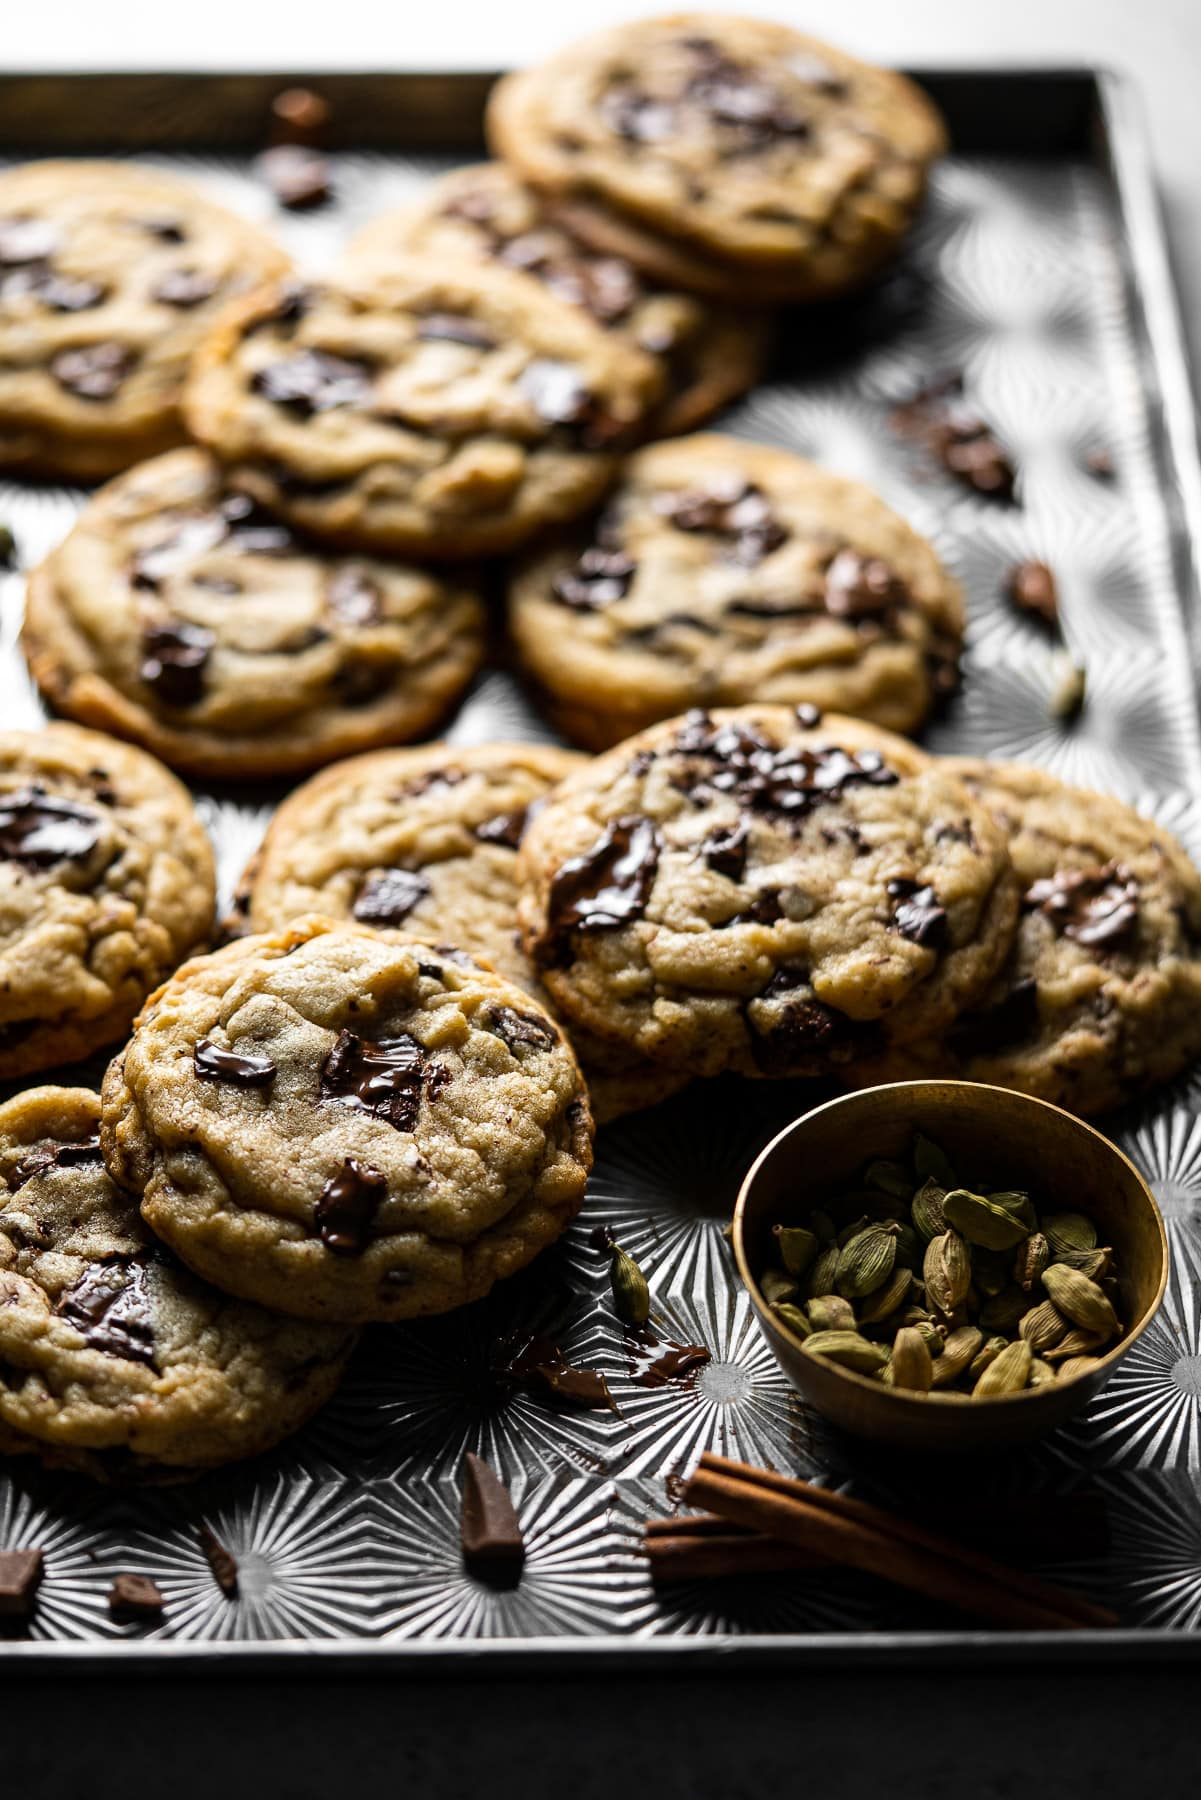 backlit tray with chocolate chip cookies and a bowl of cardamom